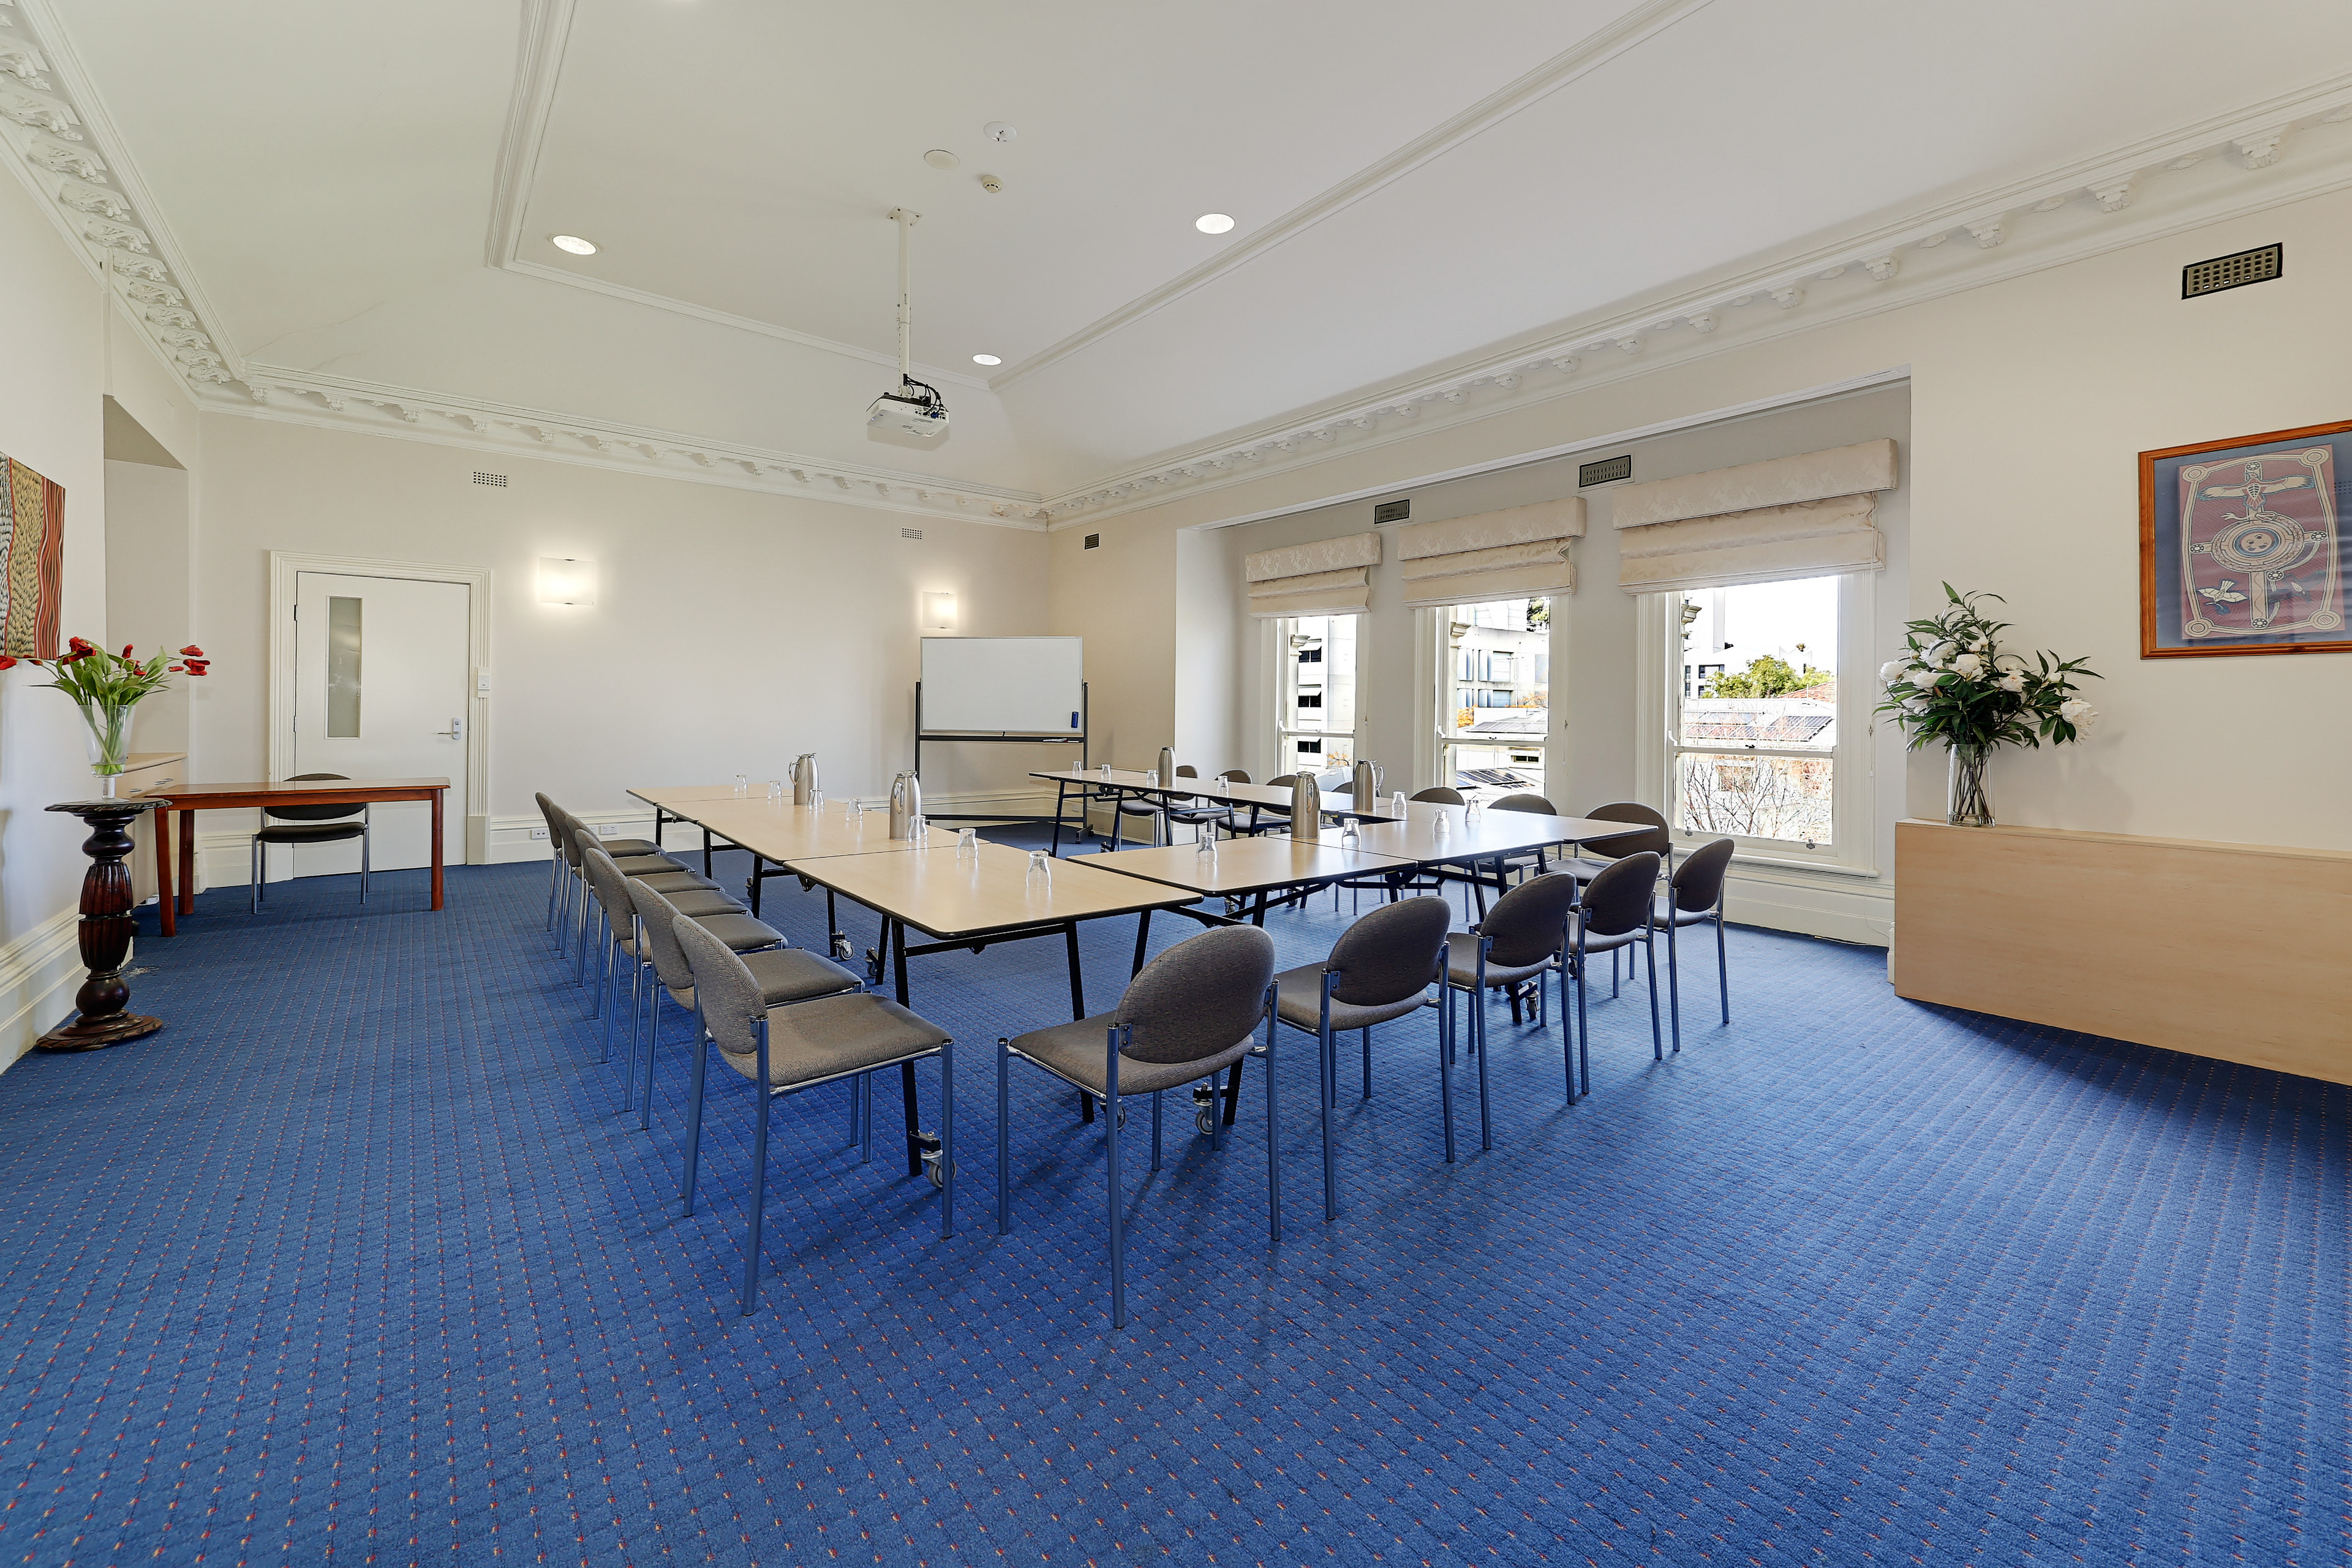 Mary Rice Function Room Image - h